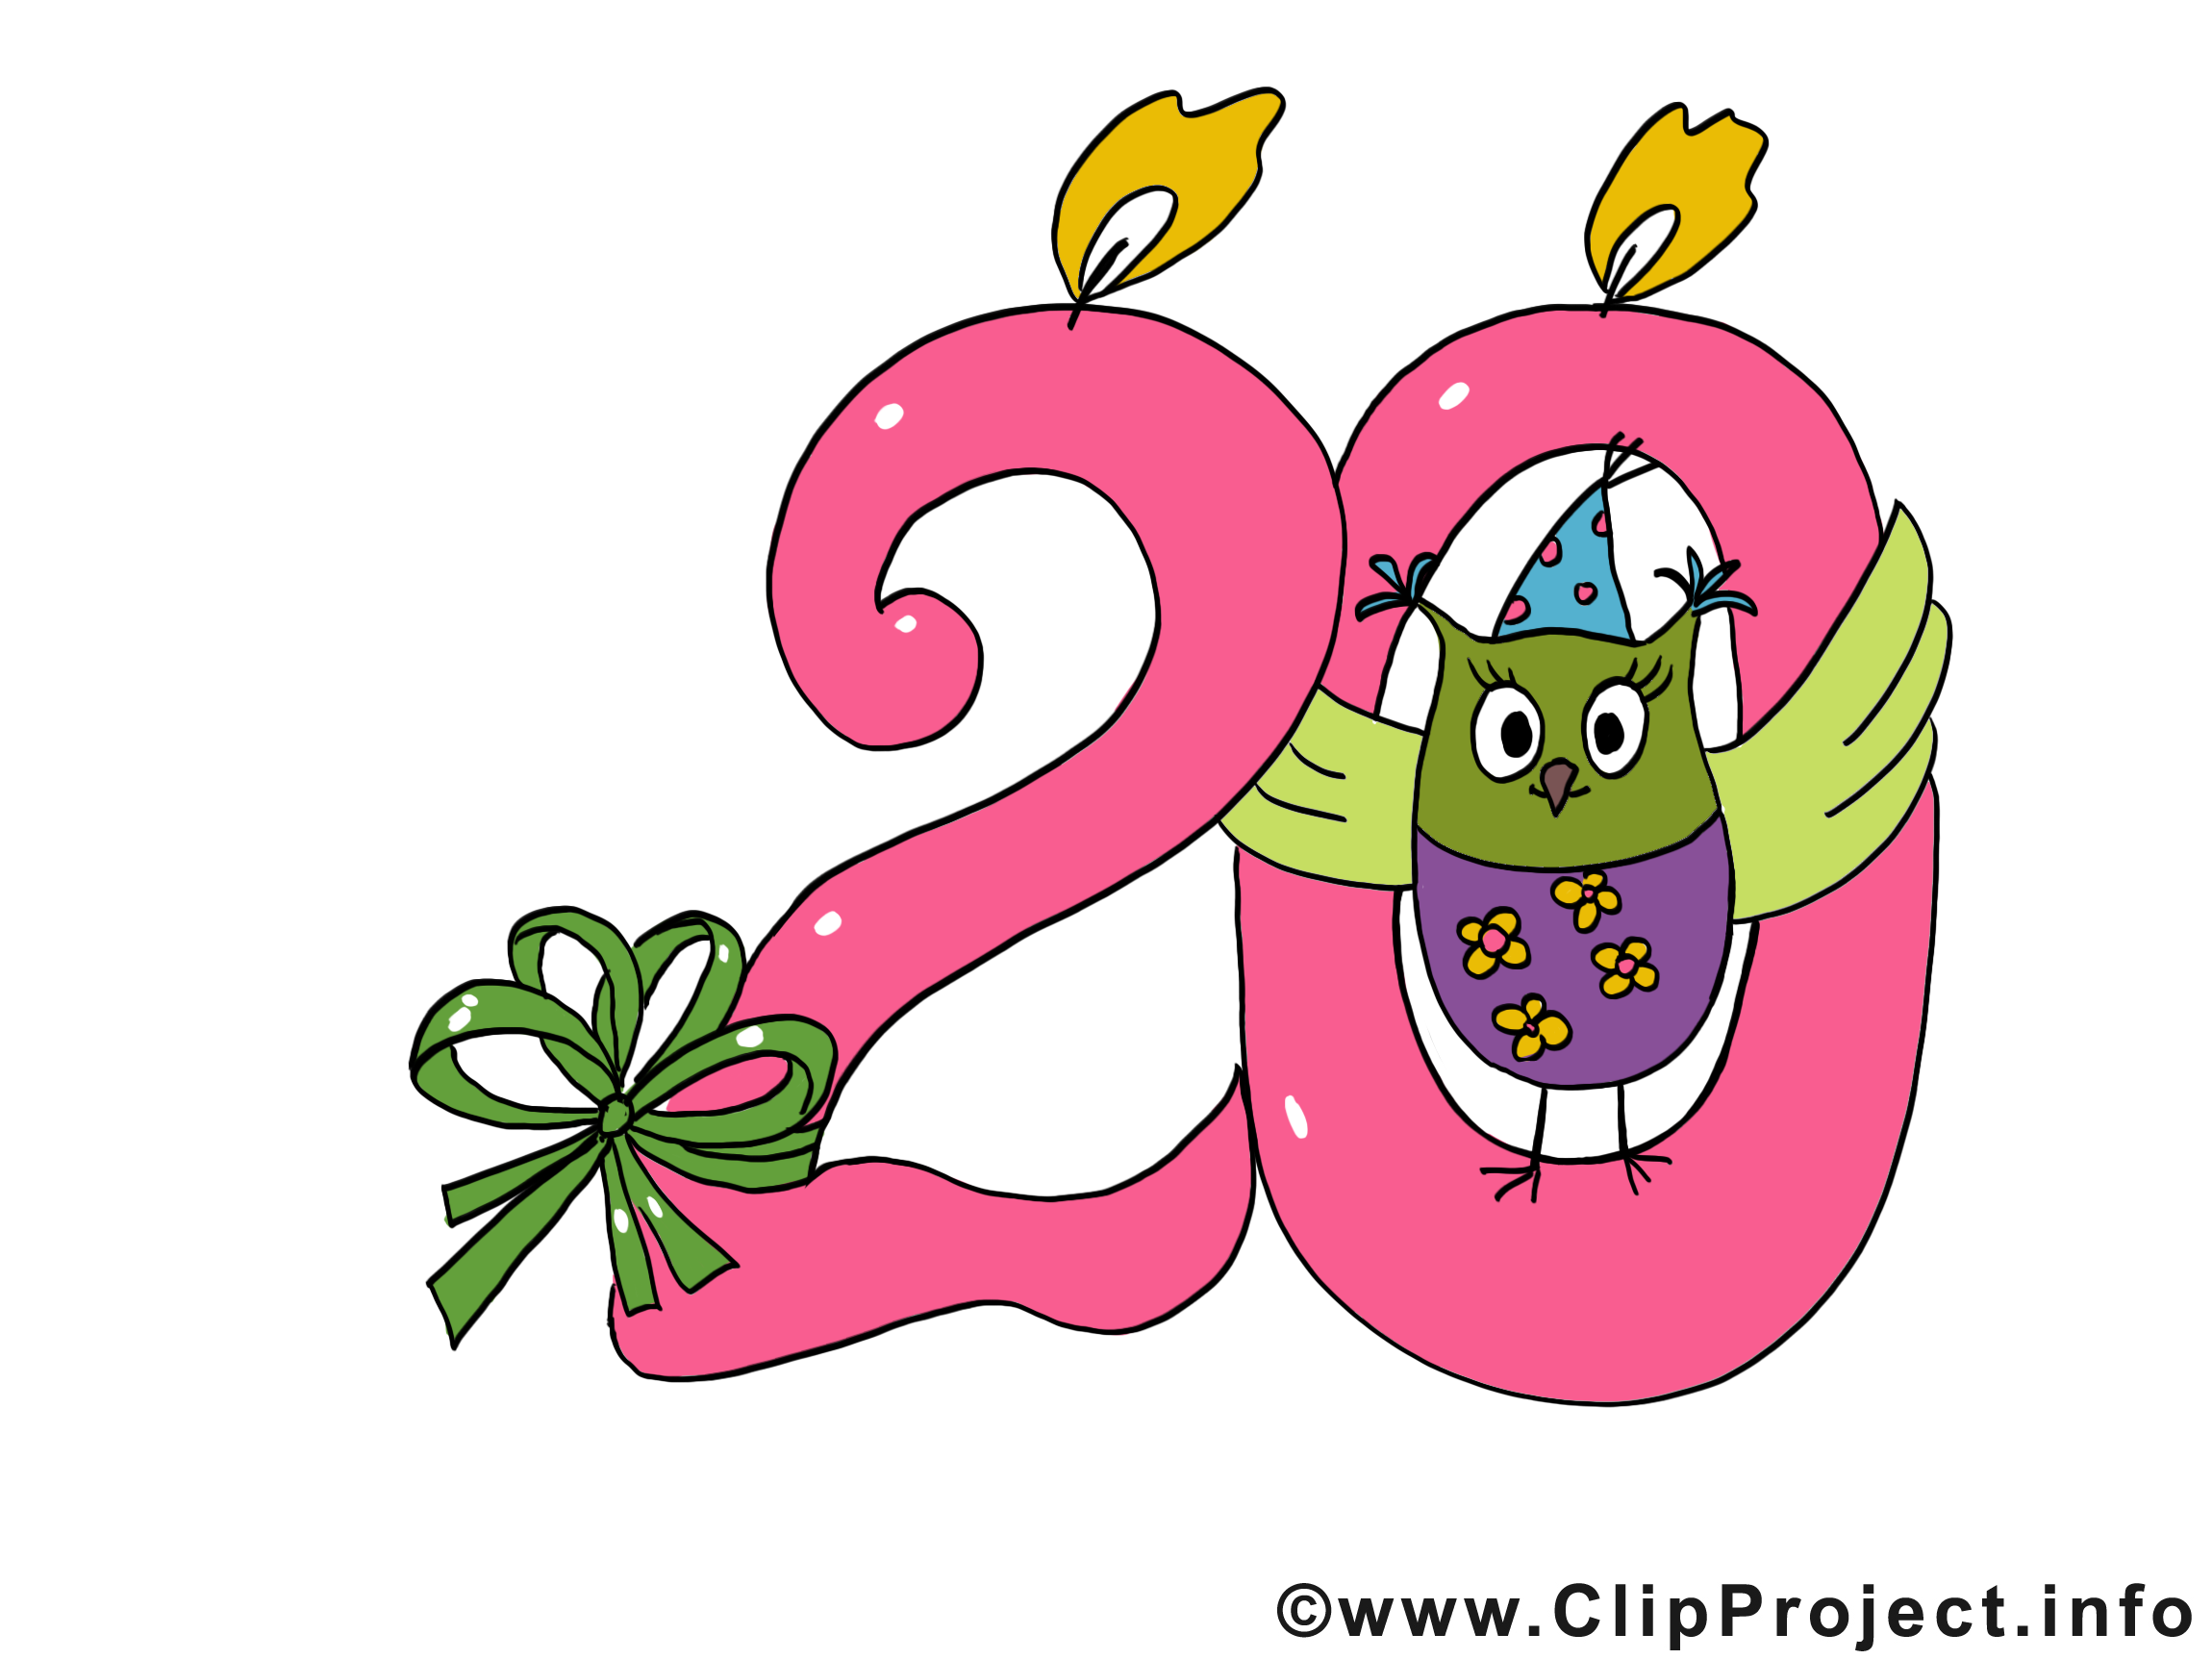 20 clipart vector freeuse download 20 Clipart - Clipart Kid vector freeuse download